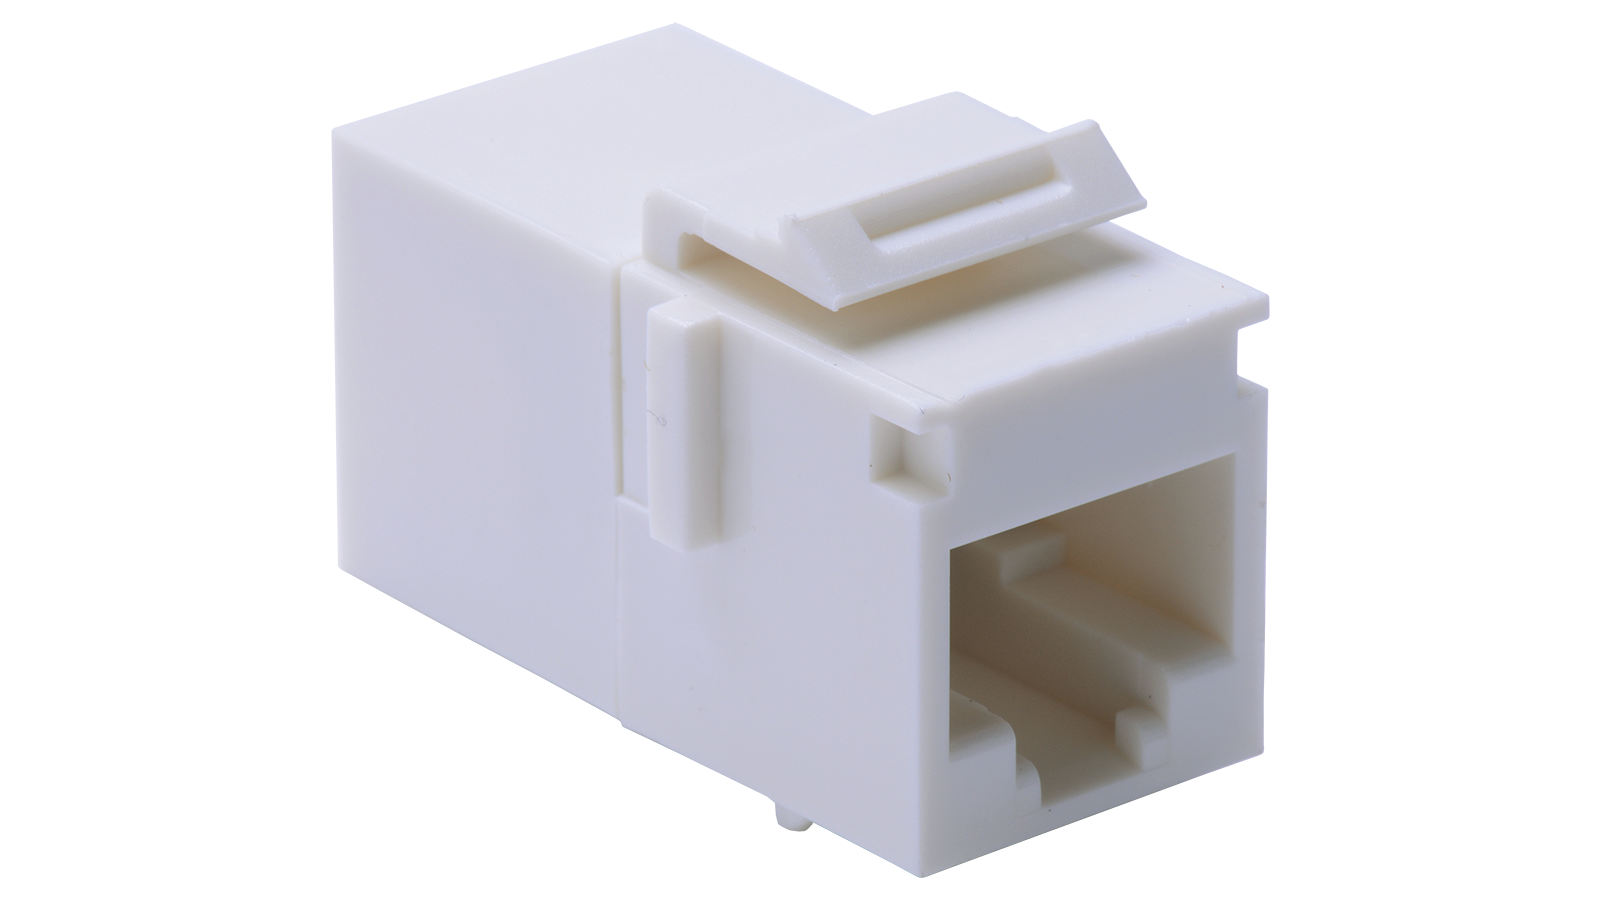 Cp 8 Wh Keystone Style Rj45 In Line Coupler For Category 5e U Utp Lan Straight Ethernet Cable Cat 5 Wiring Diagram